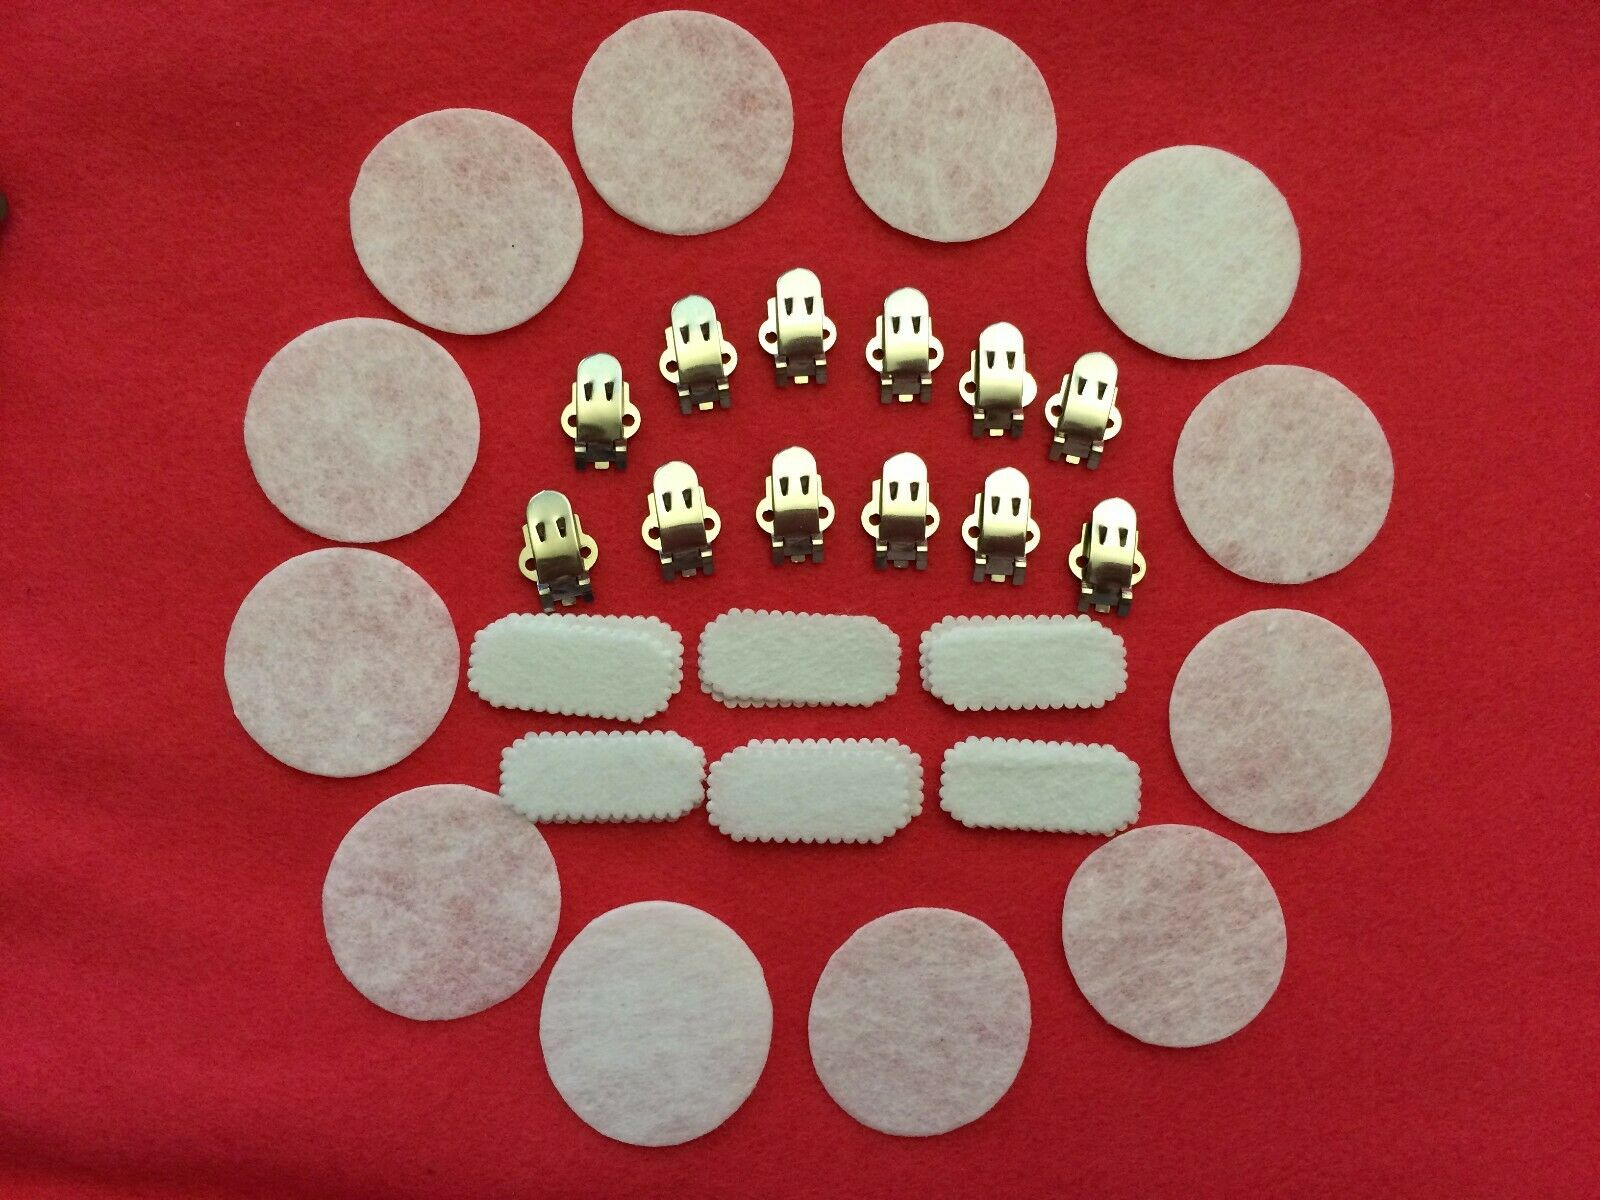 12pcs Set of Shoes Clips for DIY Black or White Felt Pad Backing - 6 Pairs Clips